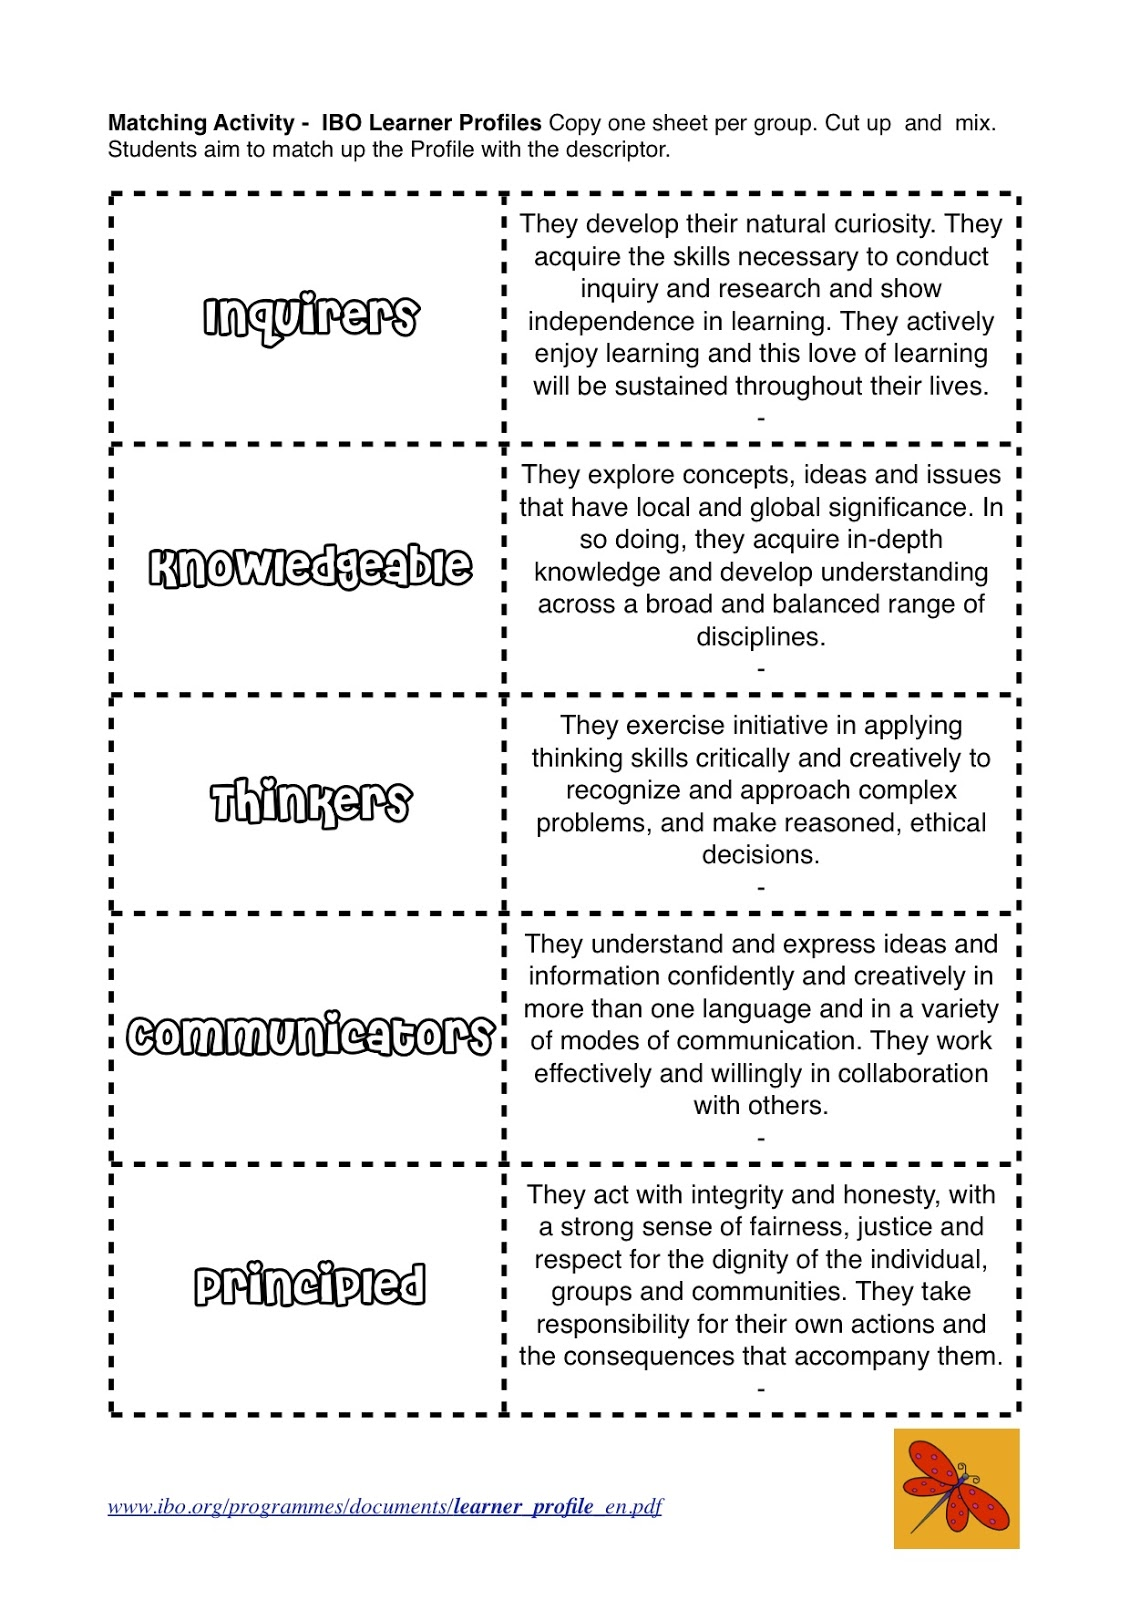 The Learner Profiles on Cutting Worksheets